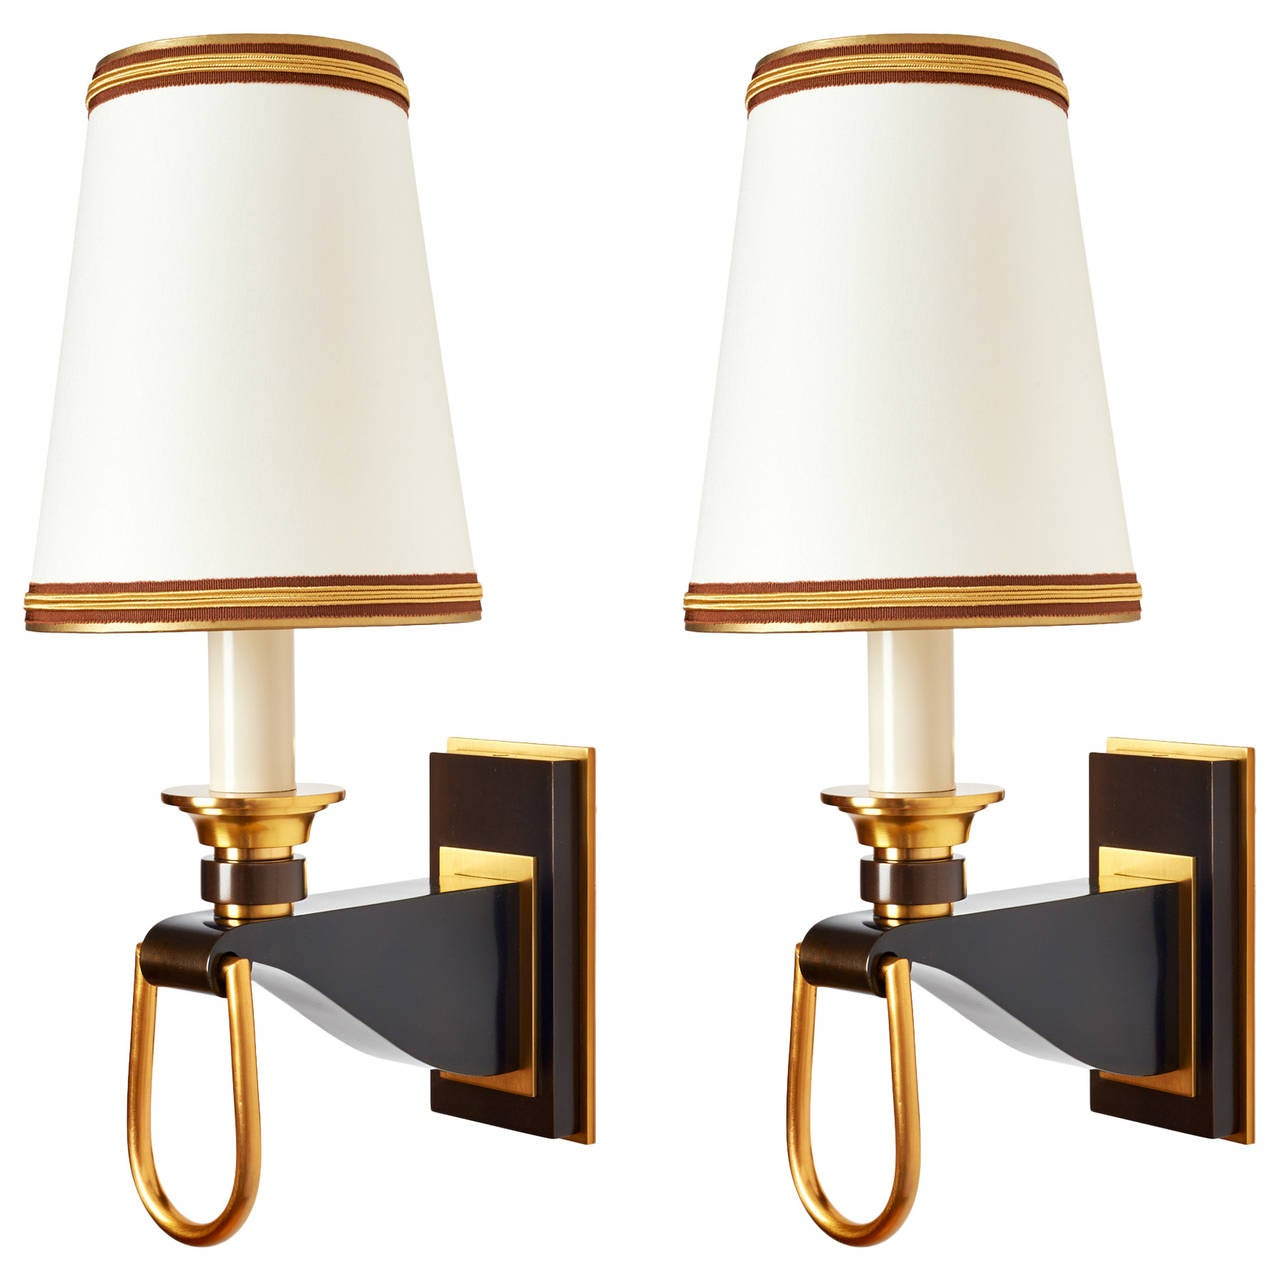 Elegant Pair of 1950s French Sconces with Stirrup Motif